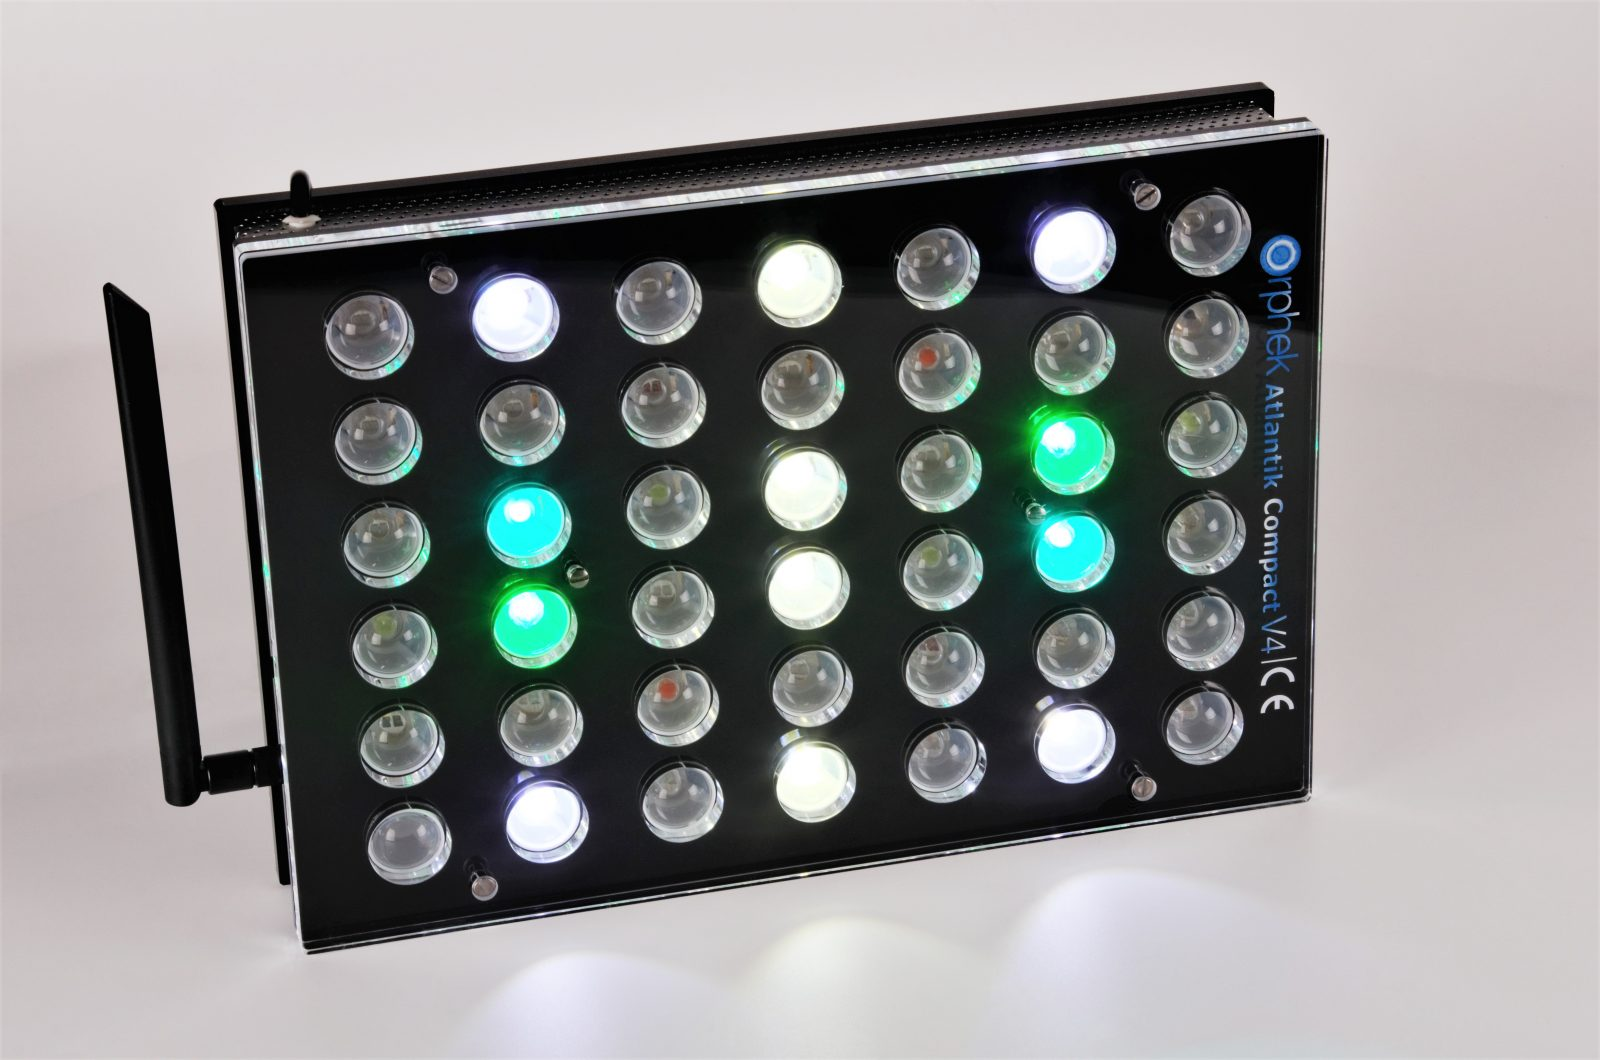 Orphek-Aquarium-LED-Lighting-Atlantik -Compact-V4-light -on - کانال 1